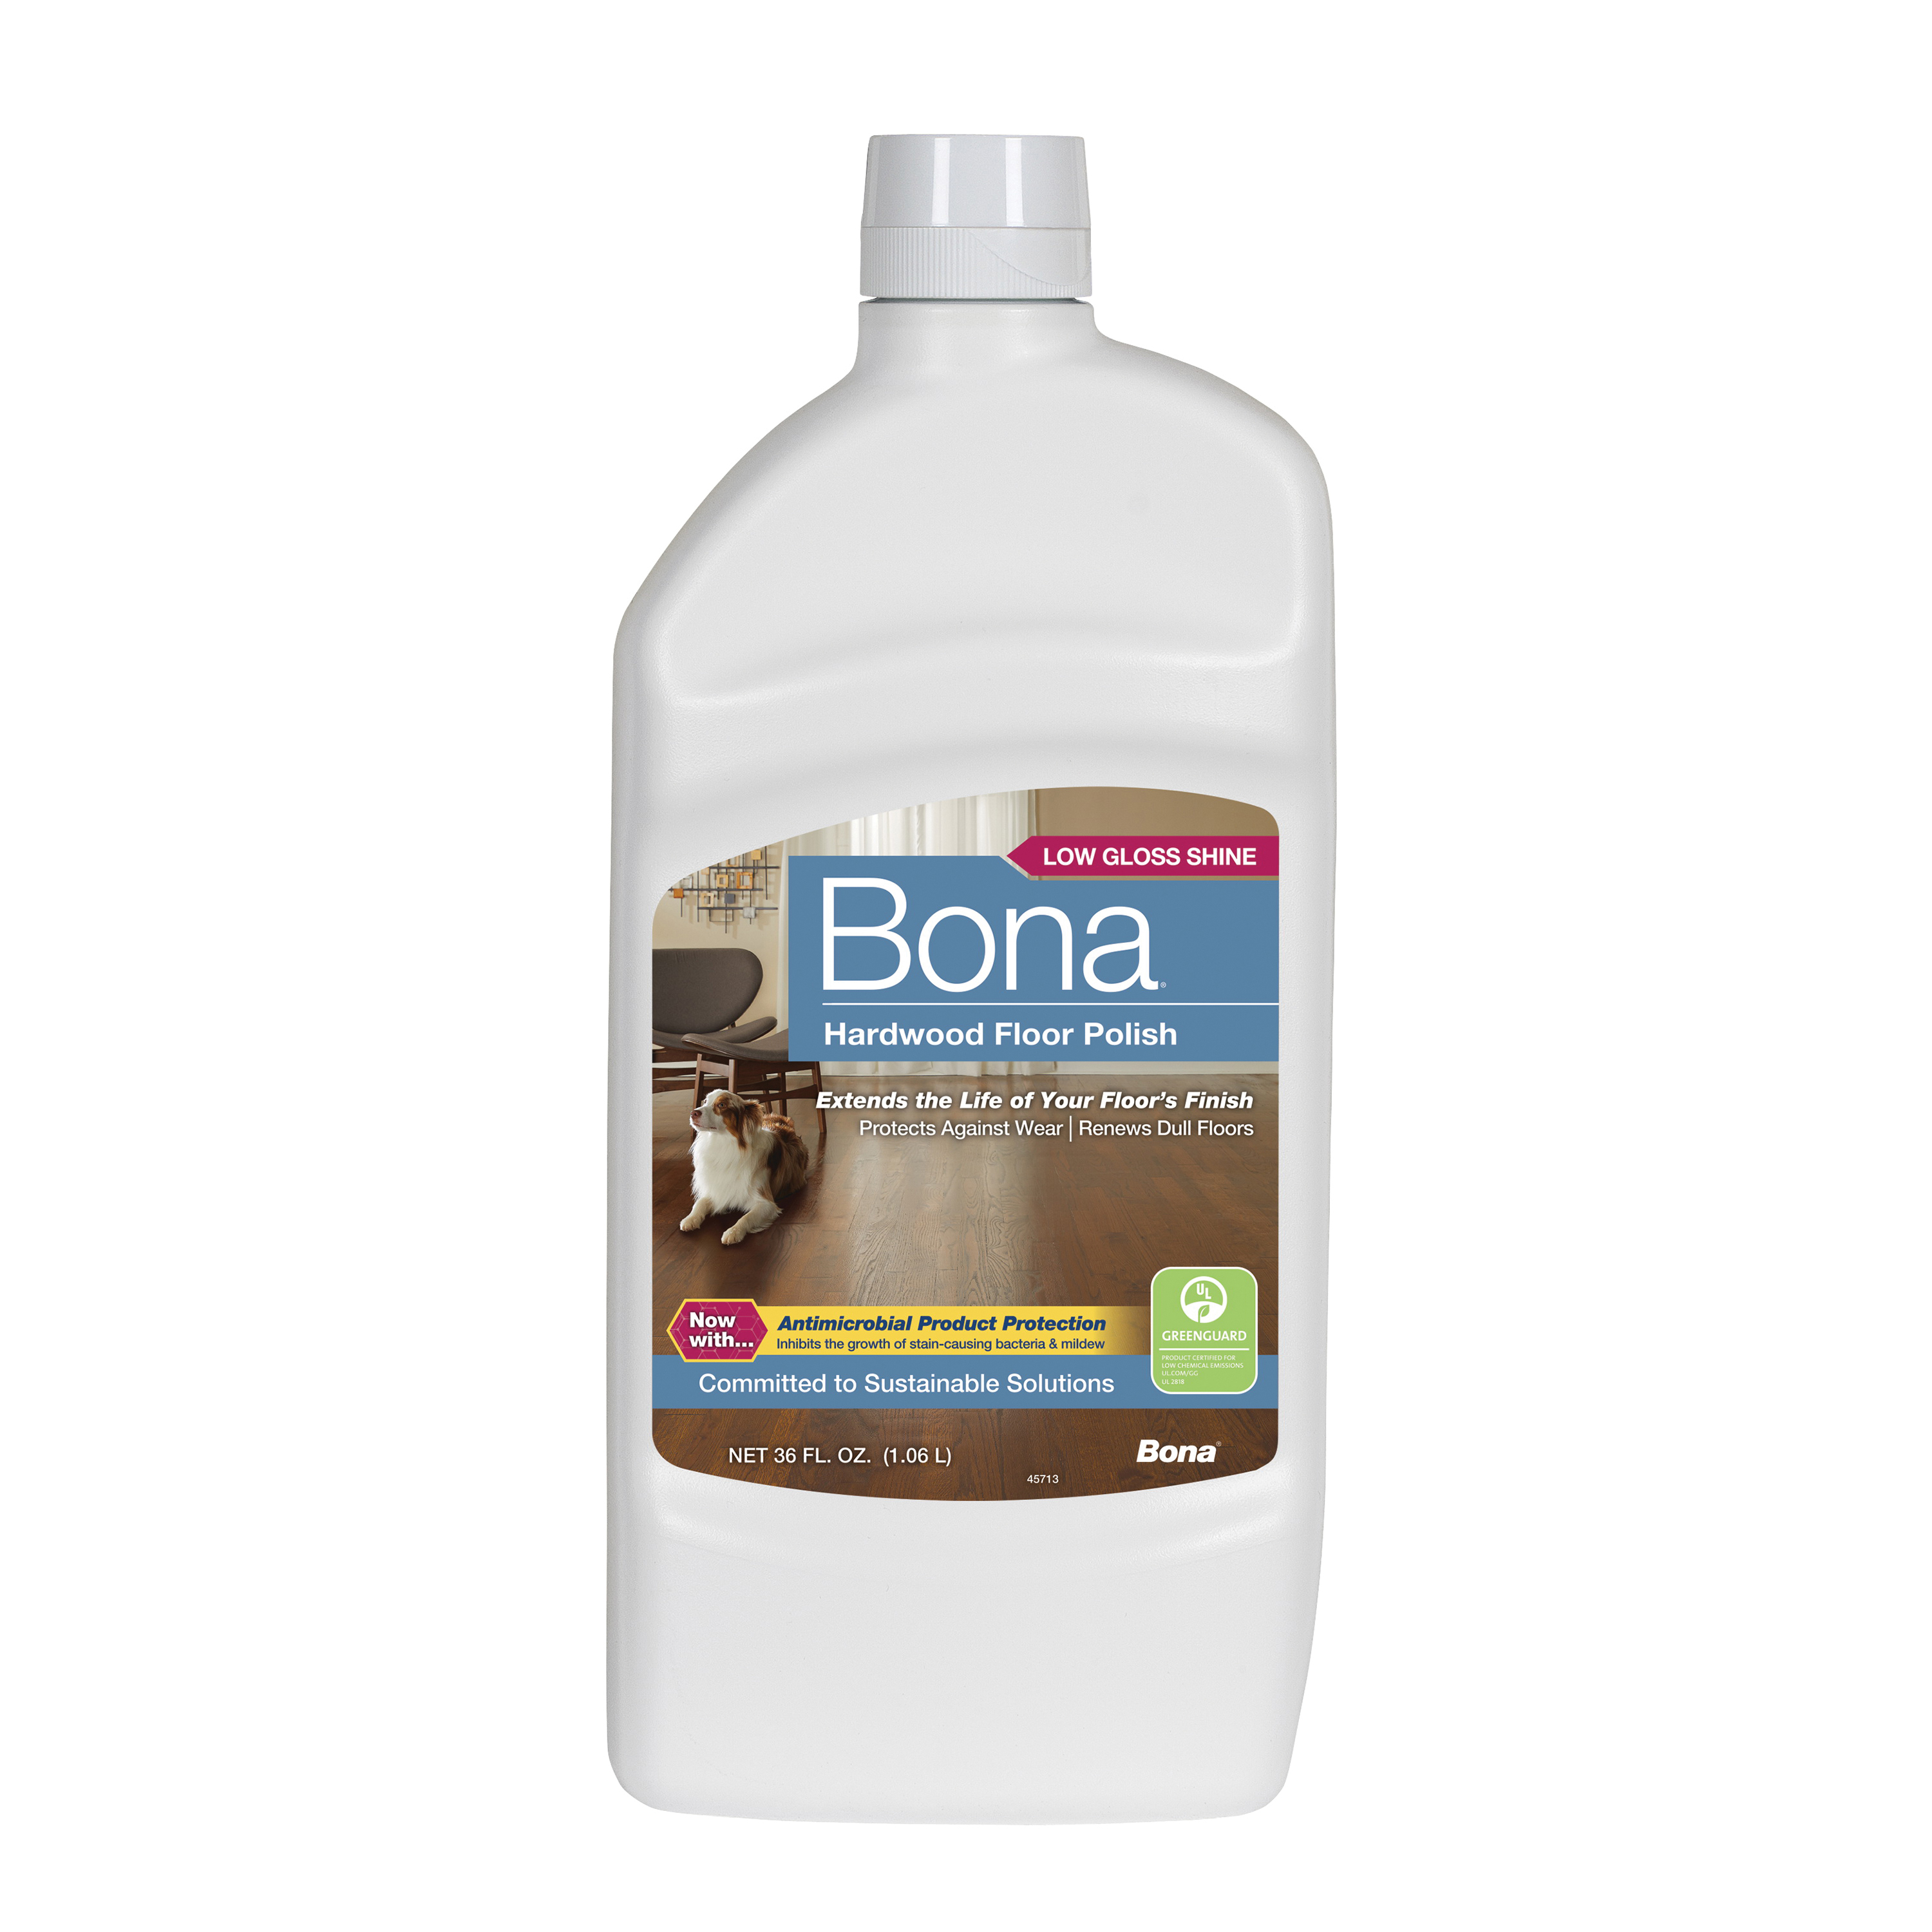 Picture of Bona WP500359001 Floor Polish, 36 oz Package, Liquid, Slight Sweet, White